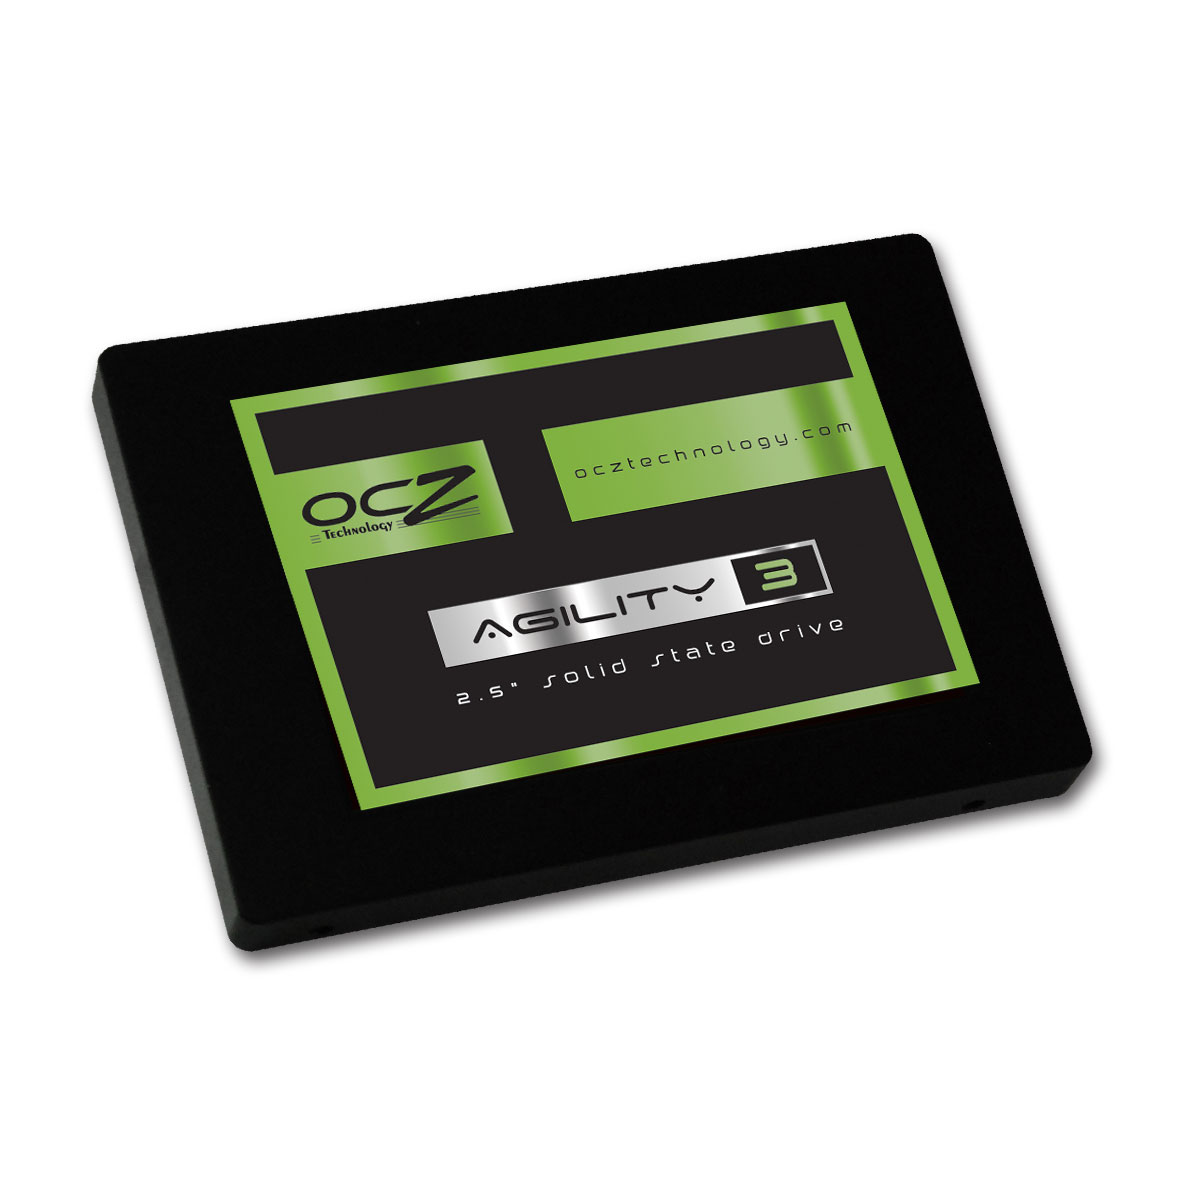 ocz agility 3 series 512 go disque ssd ocz storage. Black Bedroom Furniture Sets. Home Design Ideas